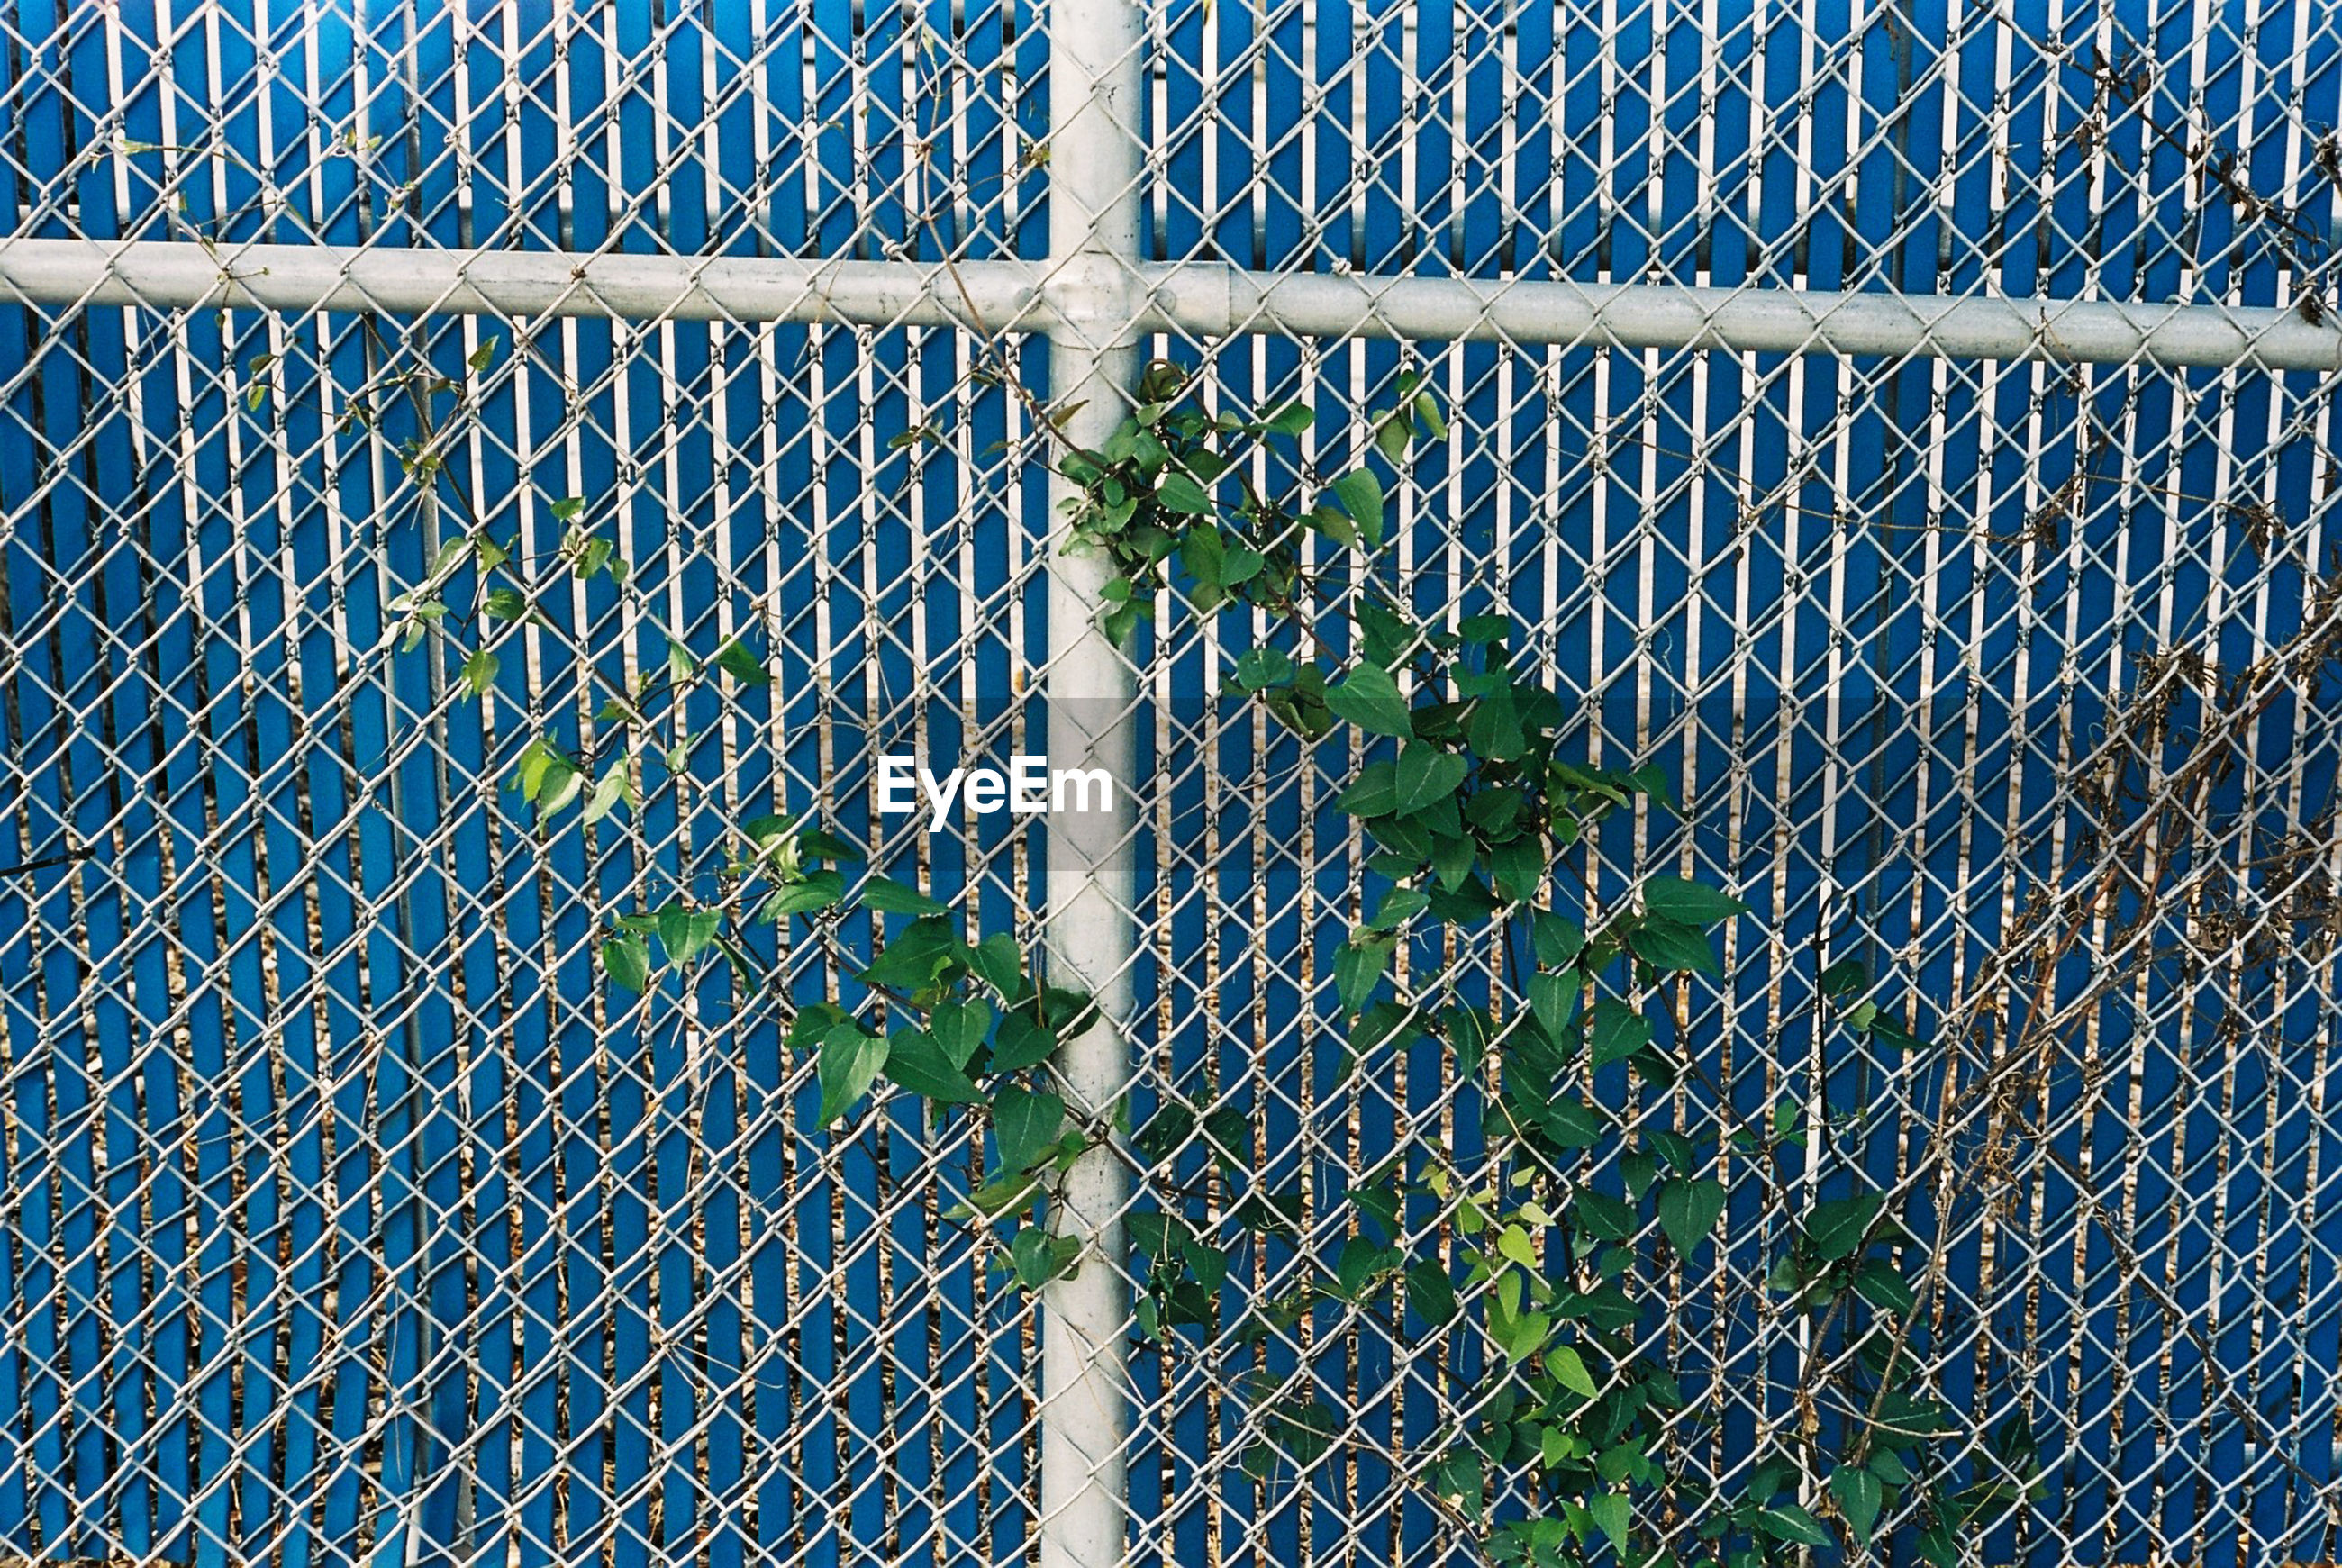 High angle view of plant growing on chainlink fence